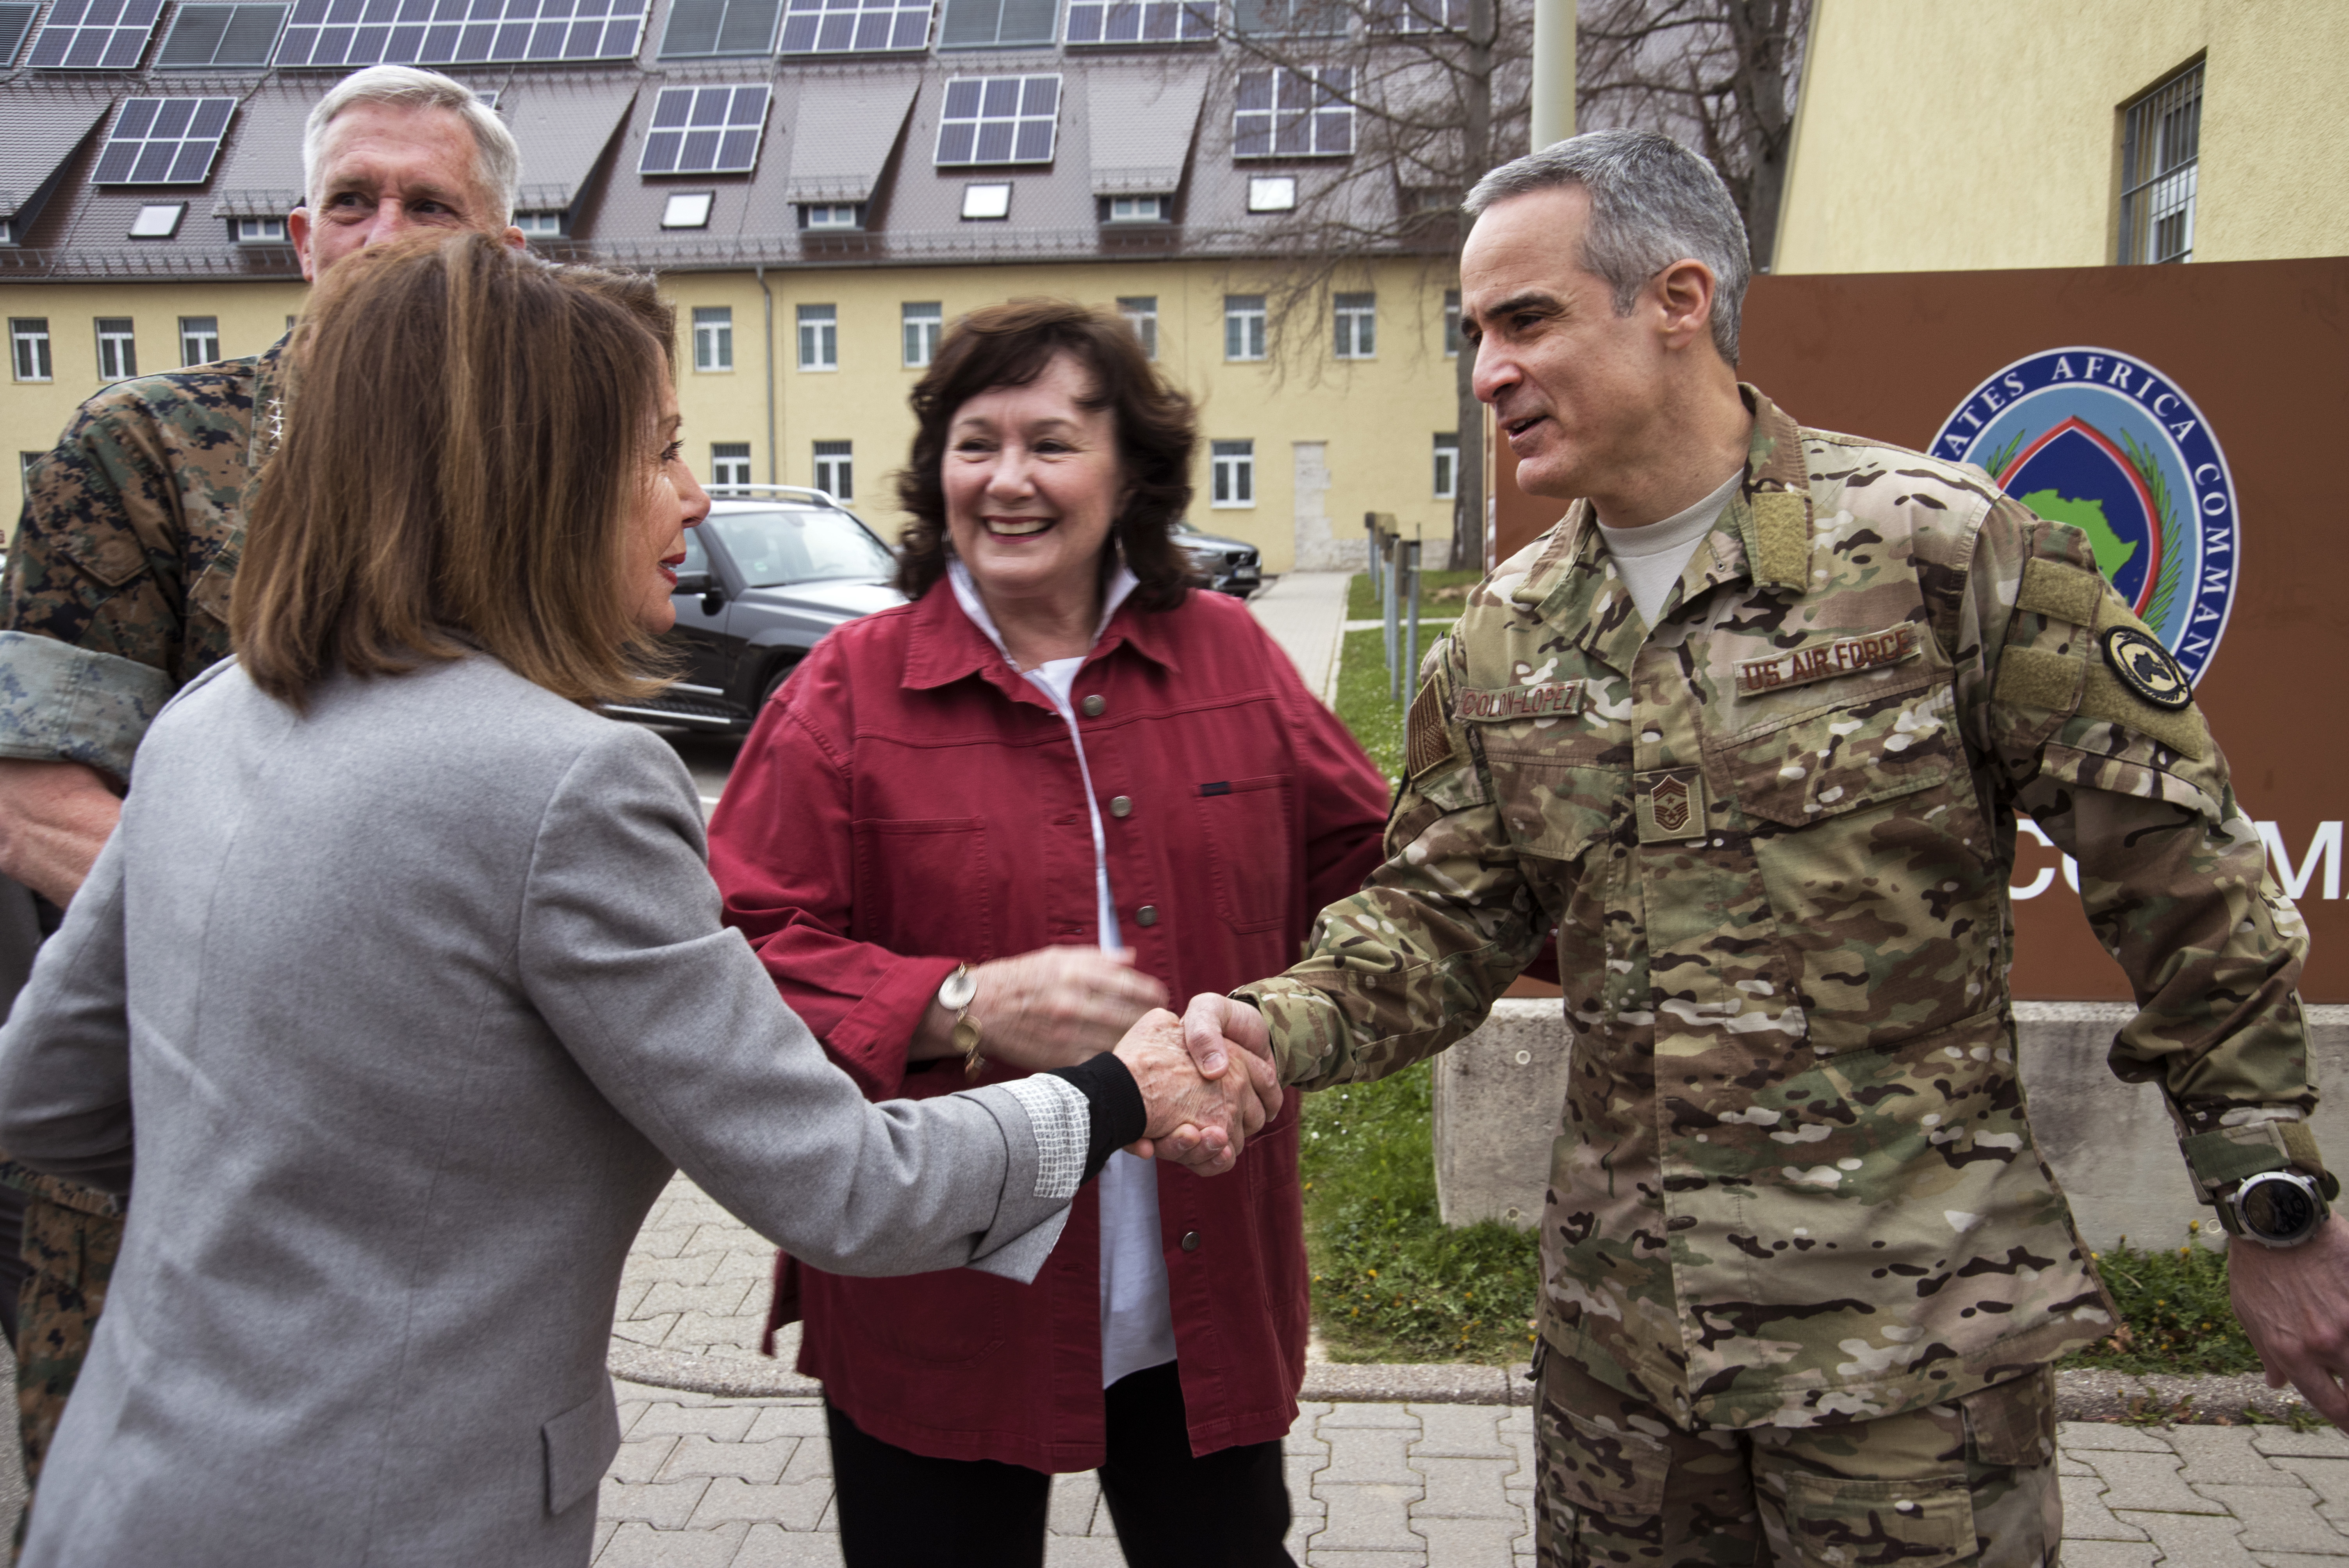 Chief Master Sgt. Ramon Colon-Lopez, command senior enlisted leader, U.S. Africa Command, greets Speaker of the House Nancy Pelosi during a visit April 13, 2019 in Stuttgart, Germany. Pelosi along with a congressional delegation visited AFRICOM to gain insight about the command's operations and activities supporting the U.S. strategy for Africa. (U.S. Navy photo by Mass Communication Specialist 1st Class Christopher Hurd/Released)